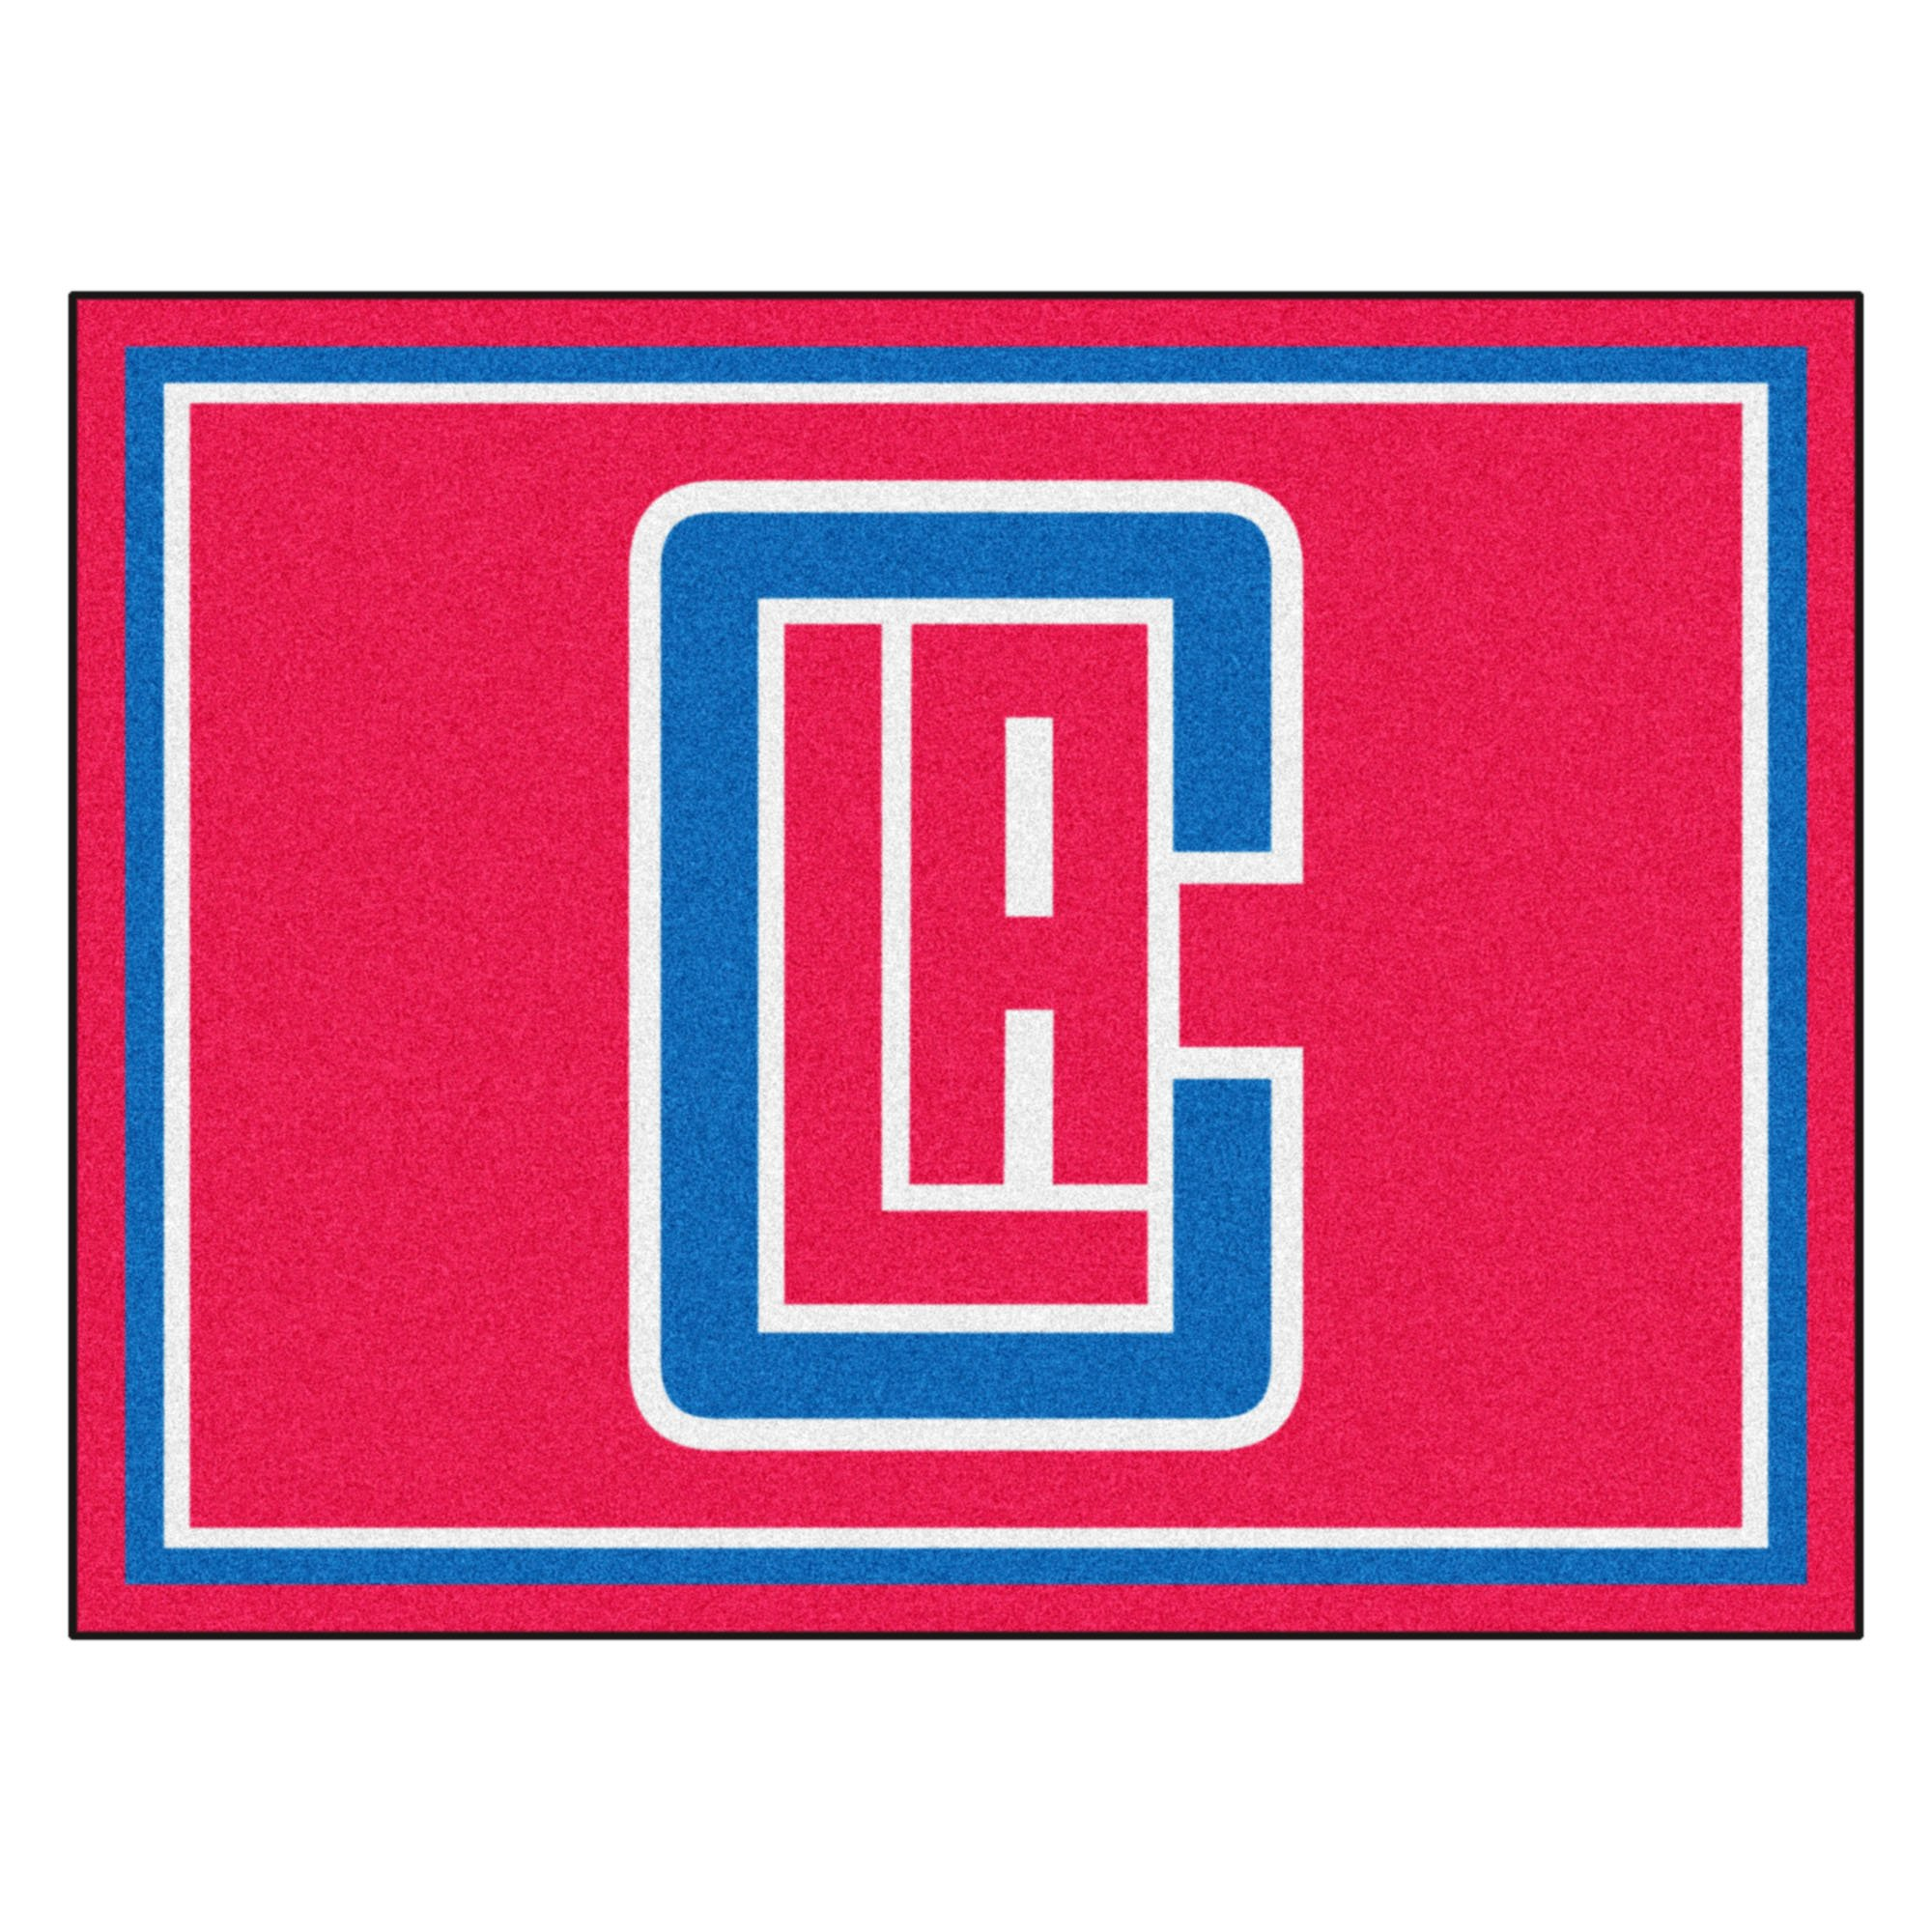 FANMATS 17454 NBA Los Angeles Clippers Rug by Fanmats